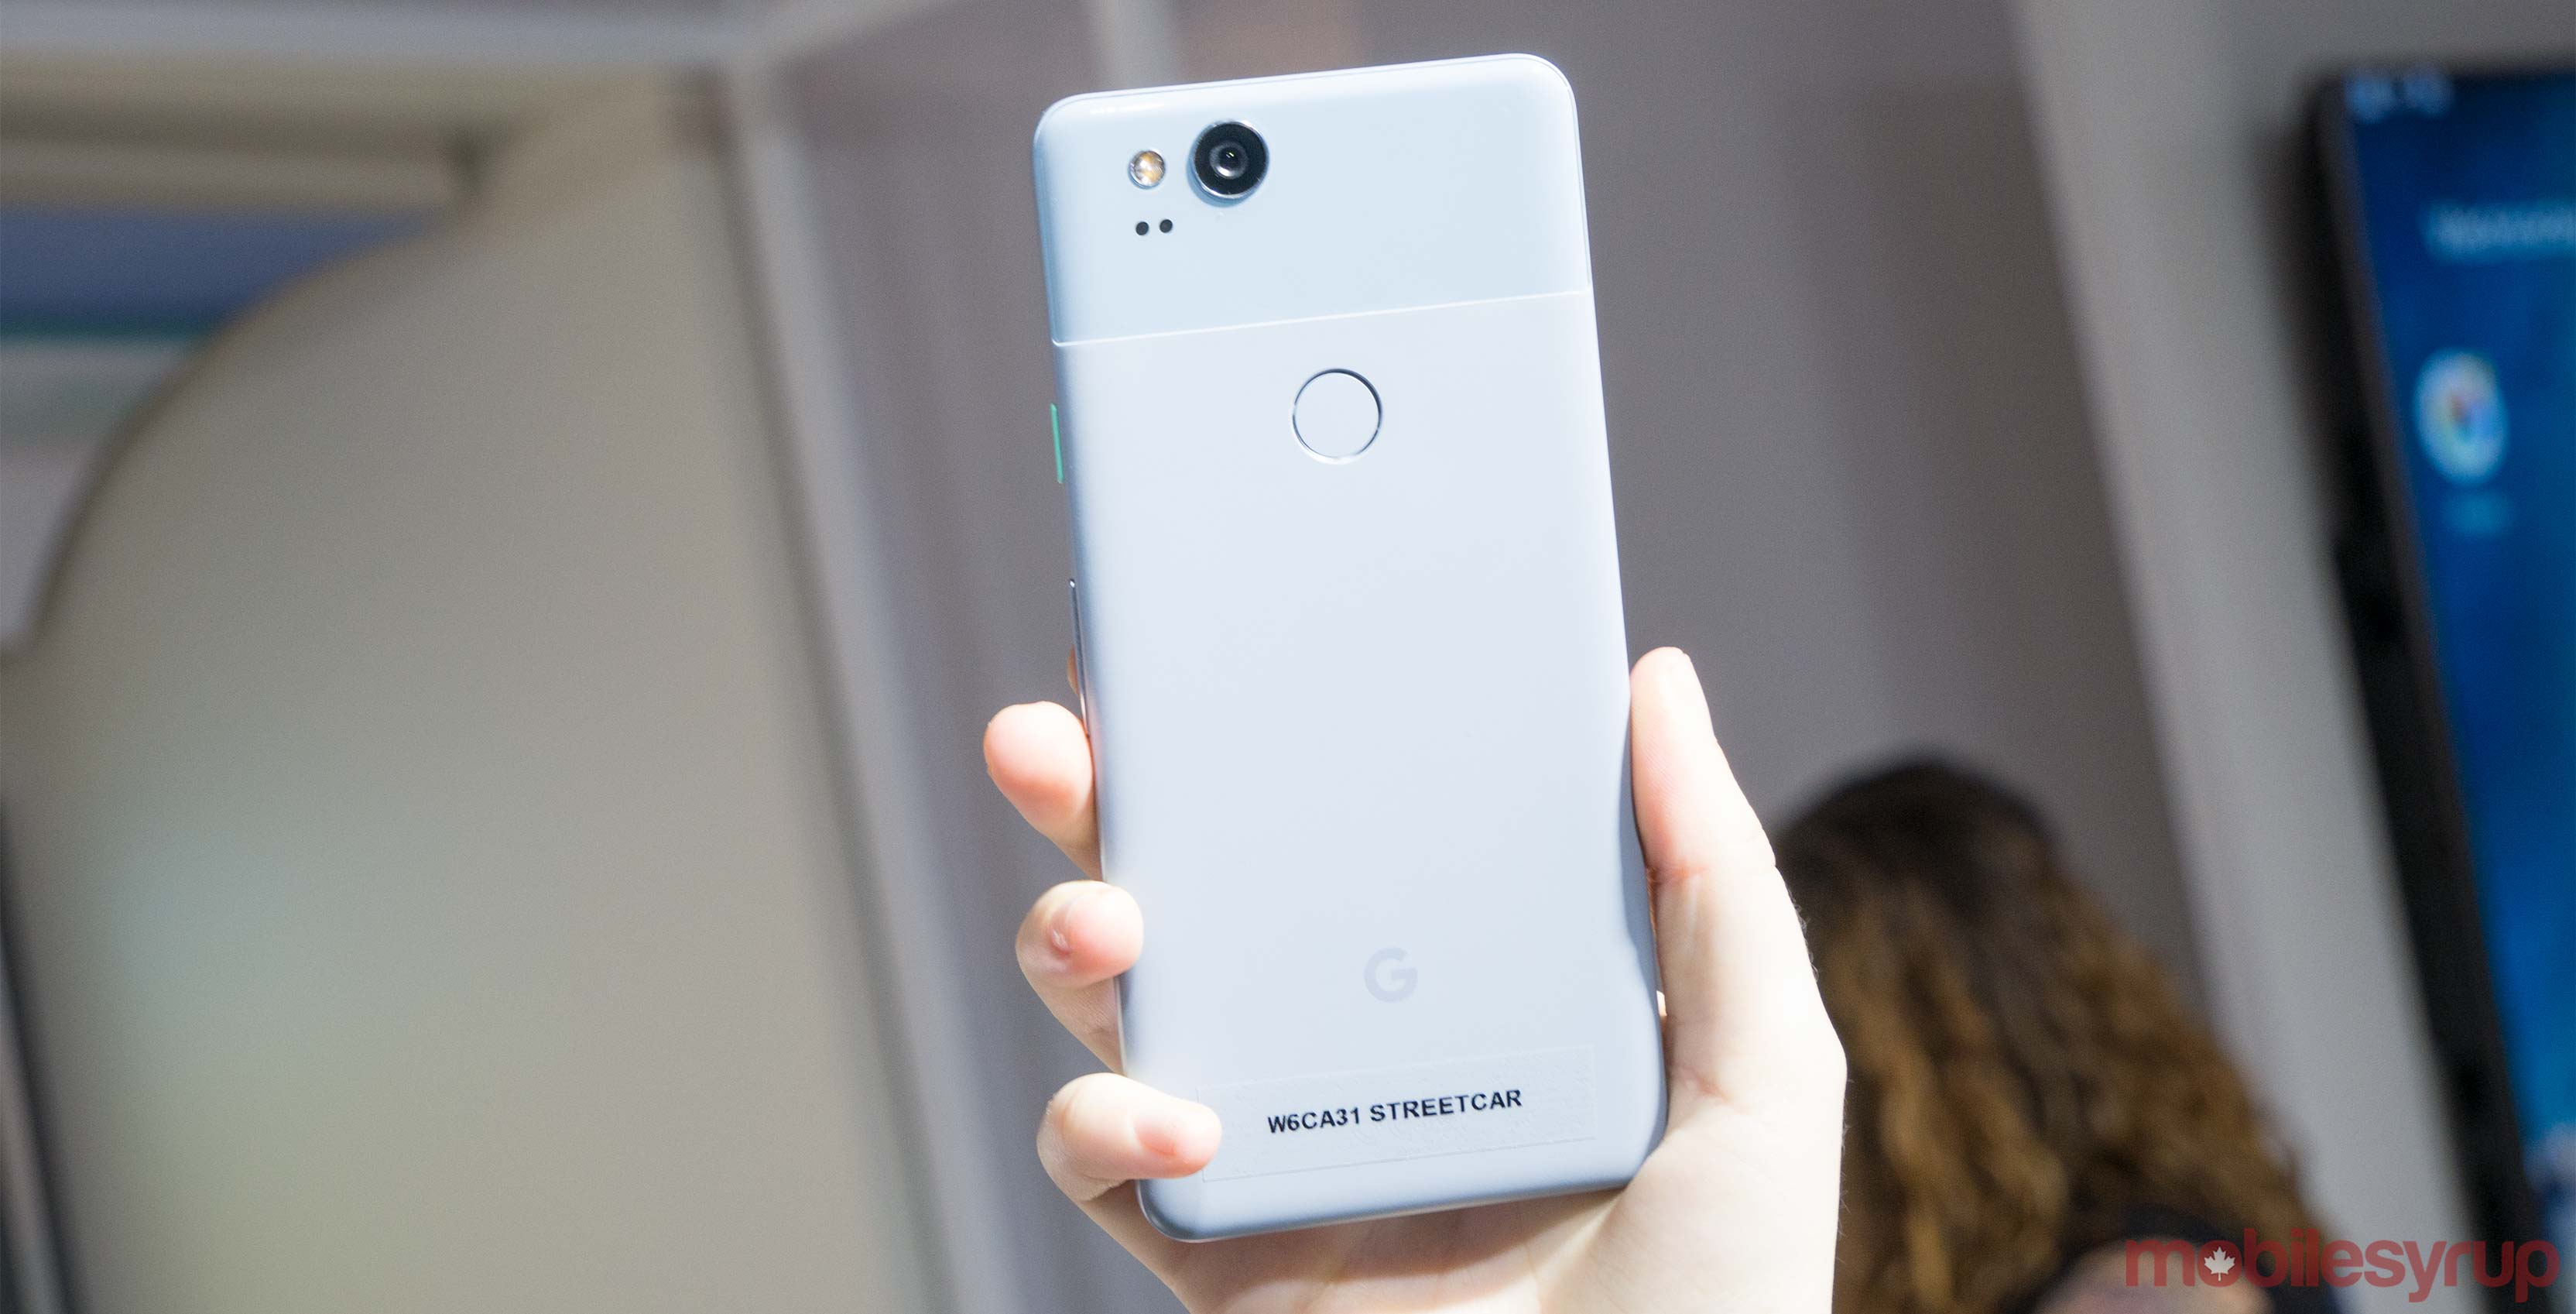 Forget a missing headphone jack, the Pixel 2 doesn't even